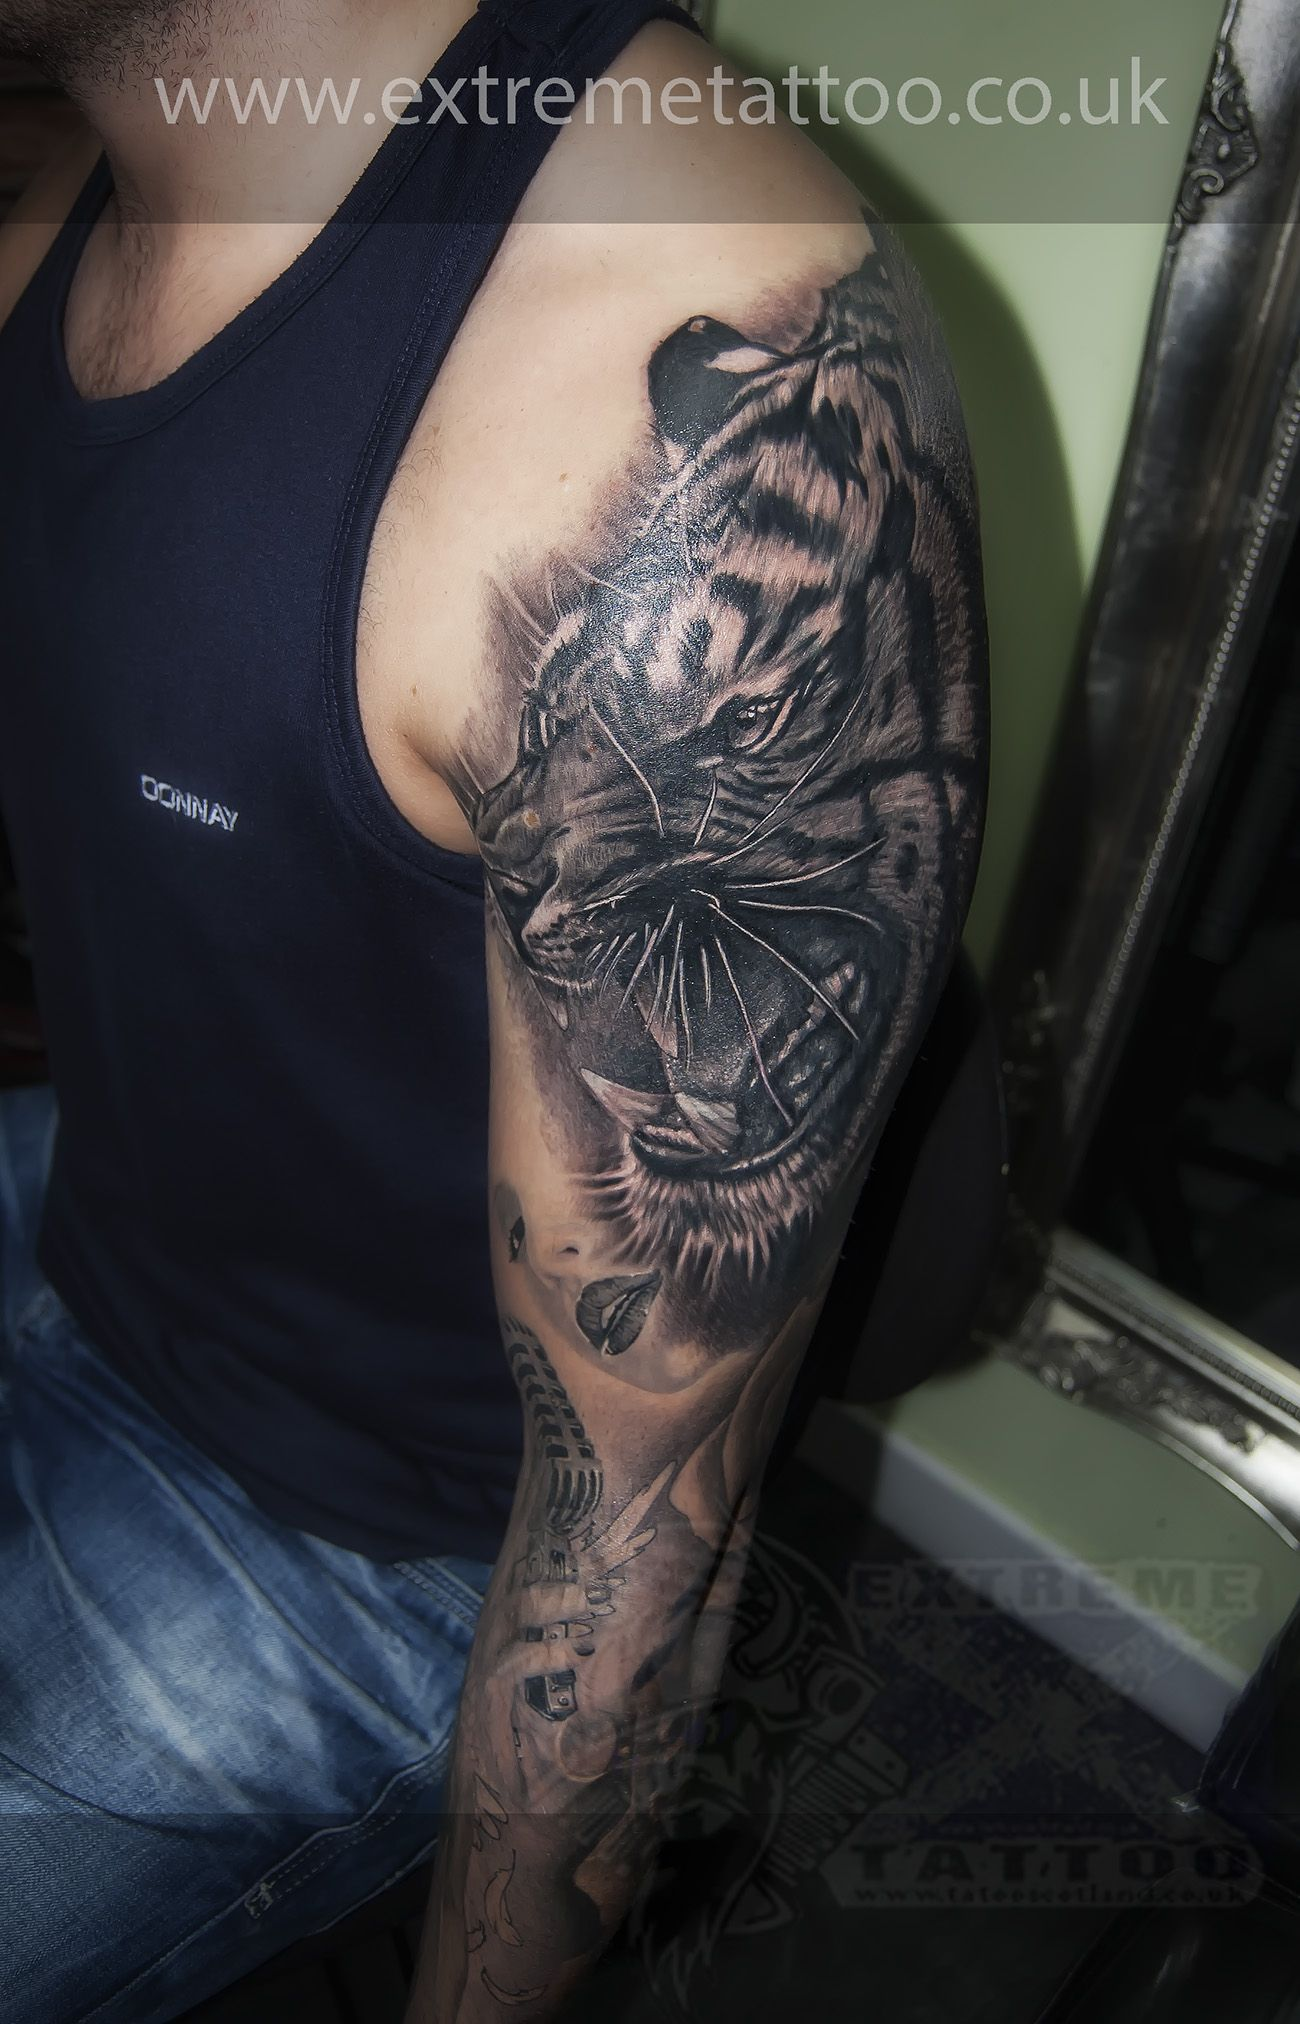 Pin on Tattoo Coverup ideas...